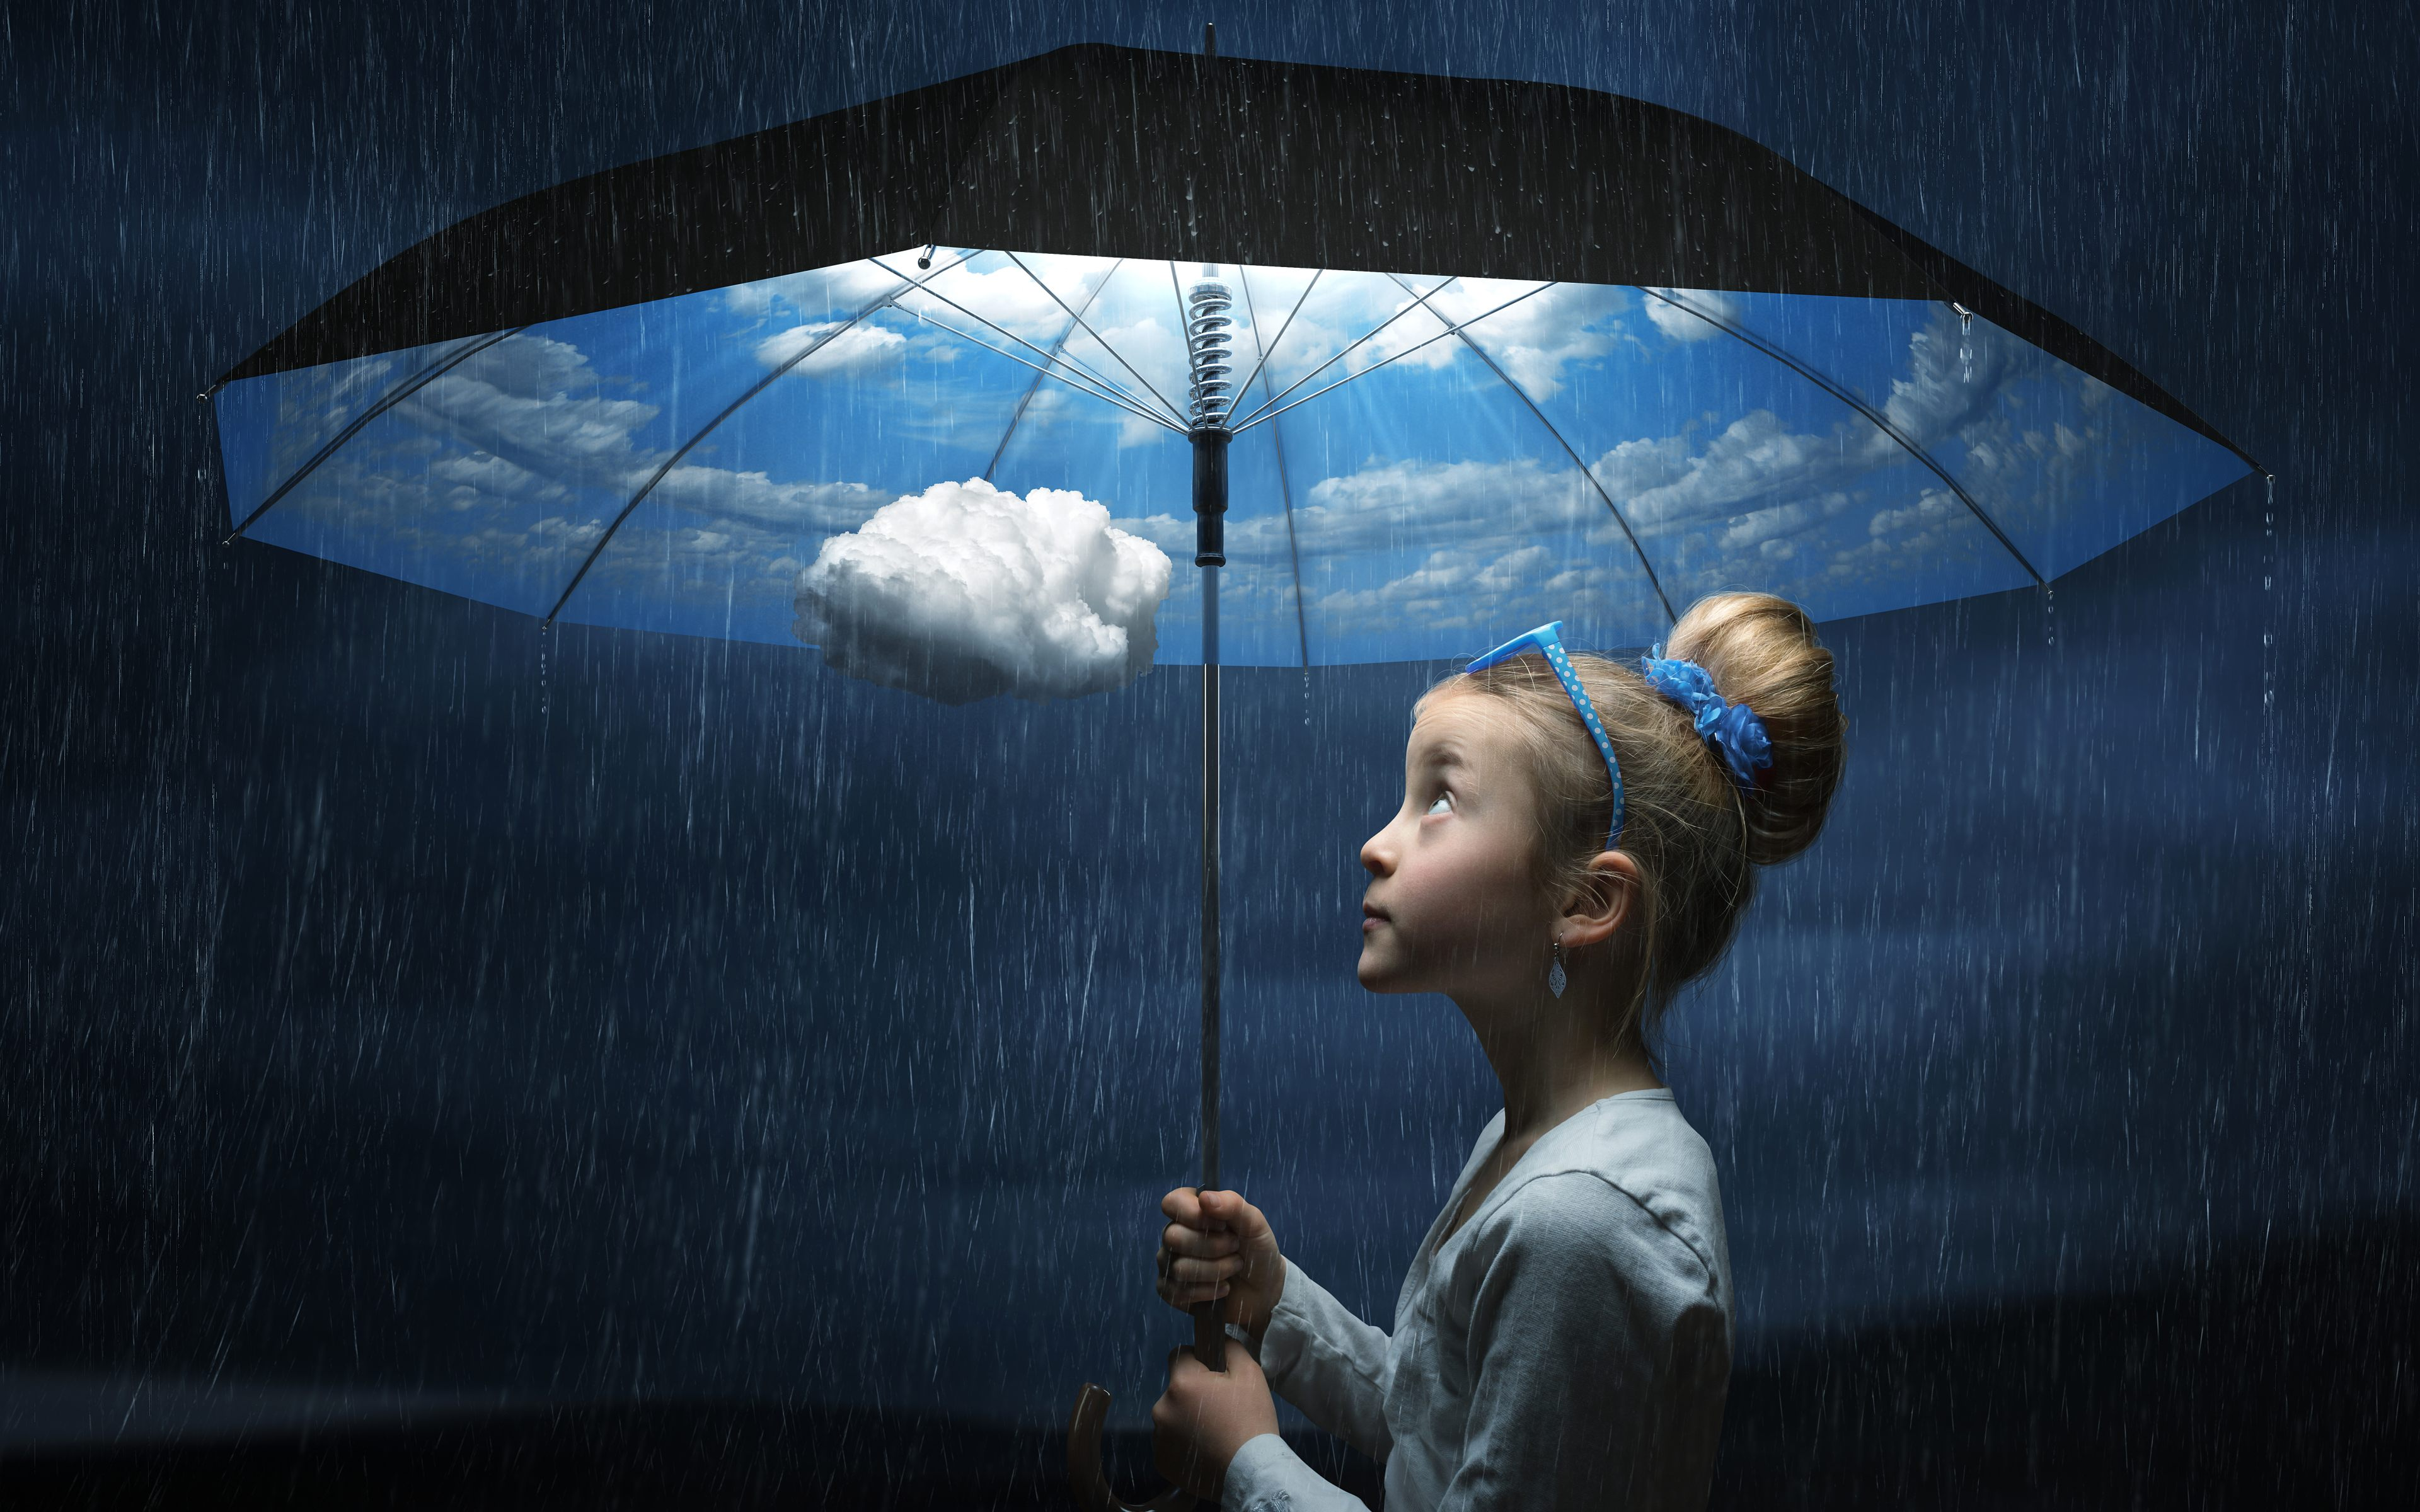 4K Umbrellas Wallpapers High Quality | Download Free